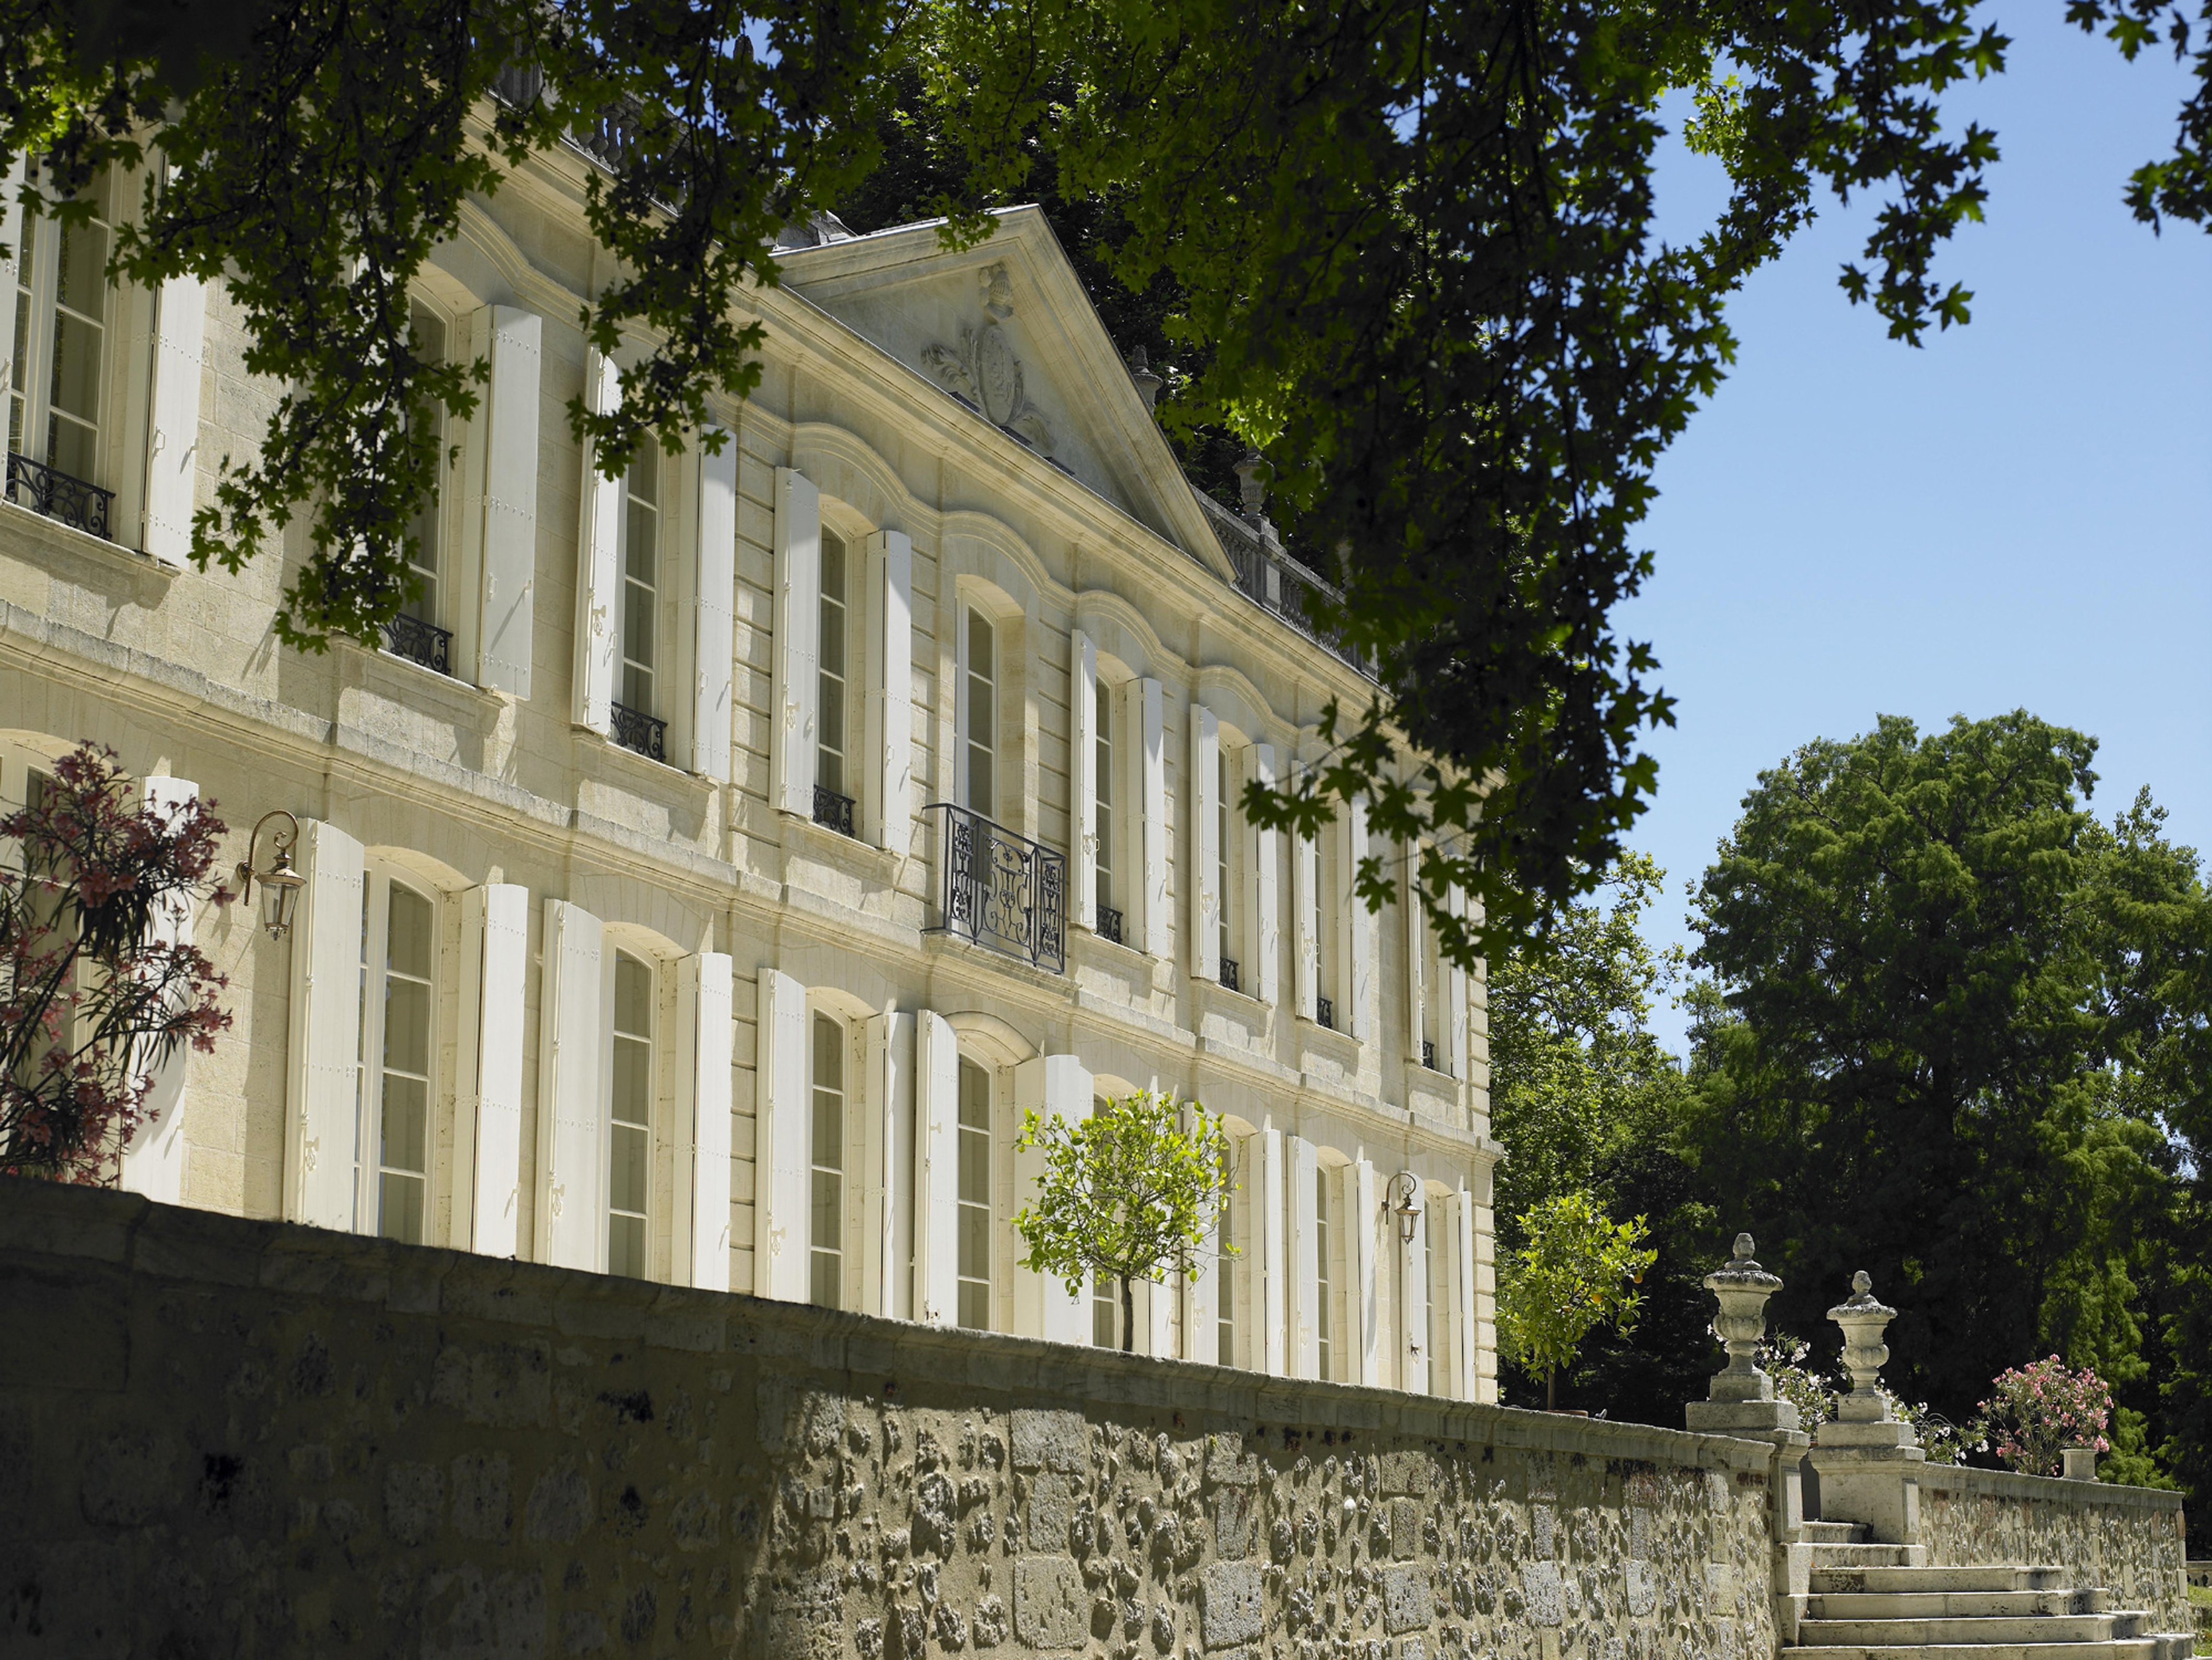 The beautiful facade of Château de la Dauphine @ladauphine